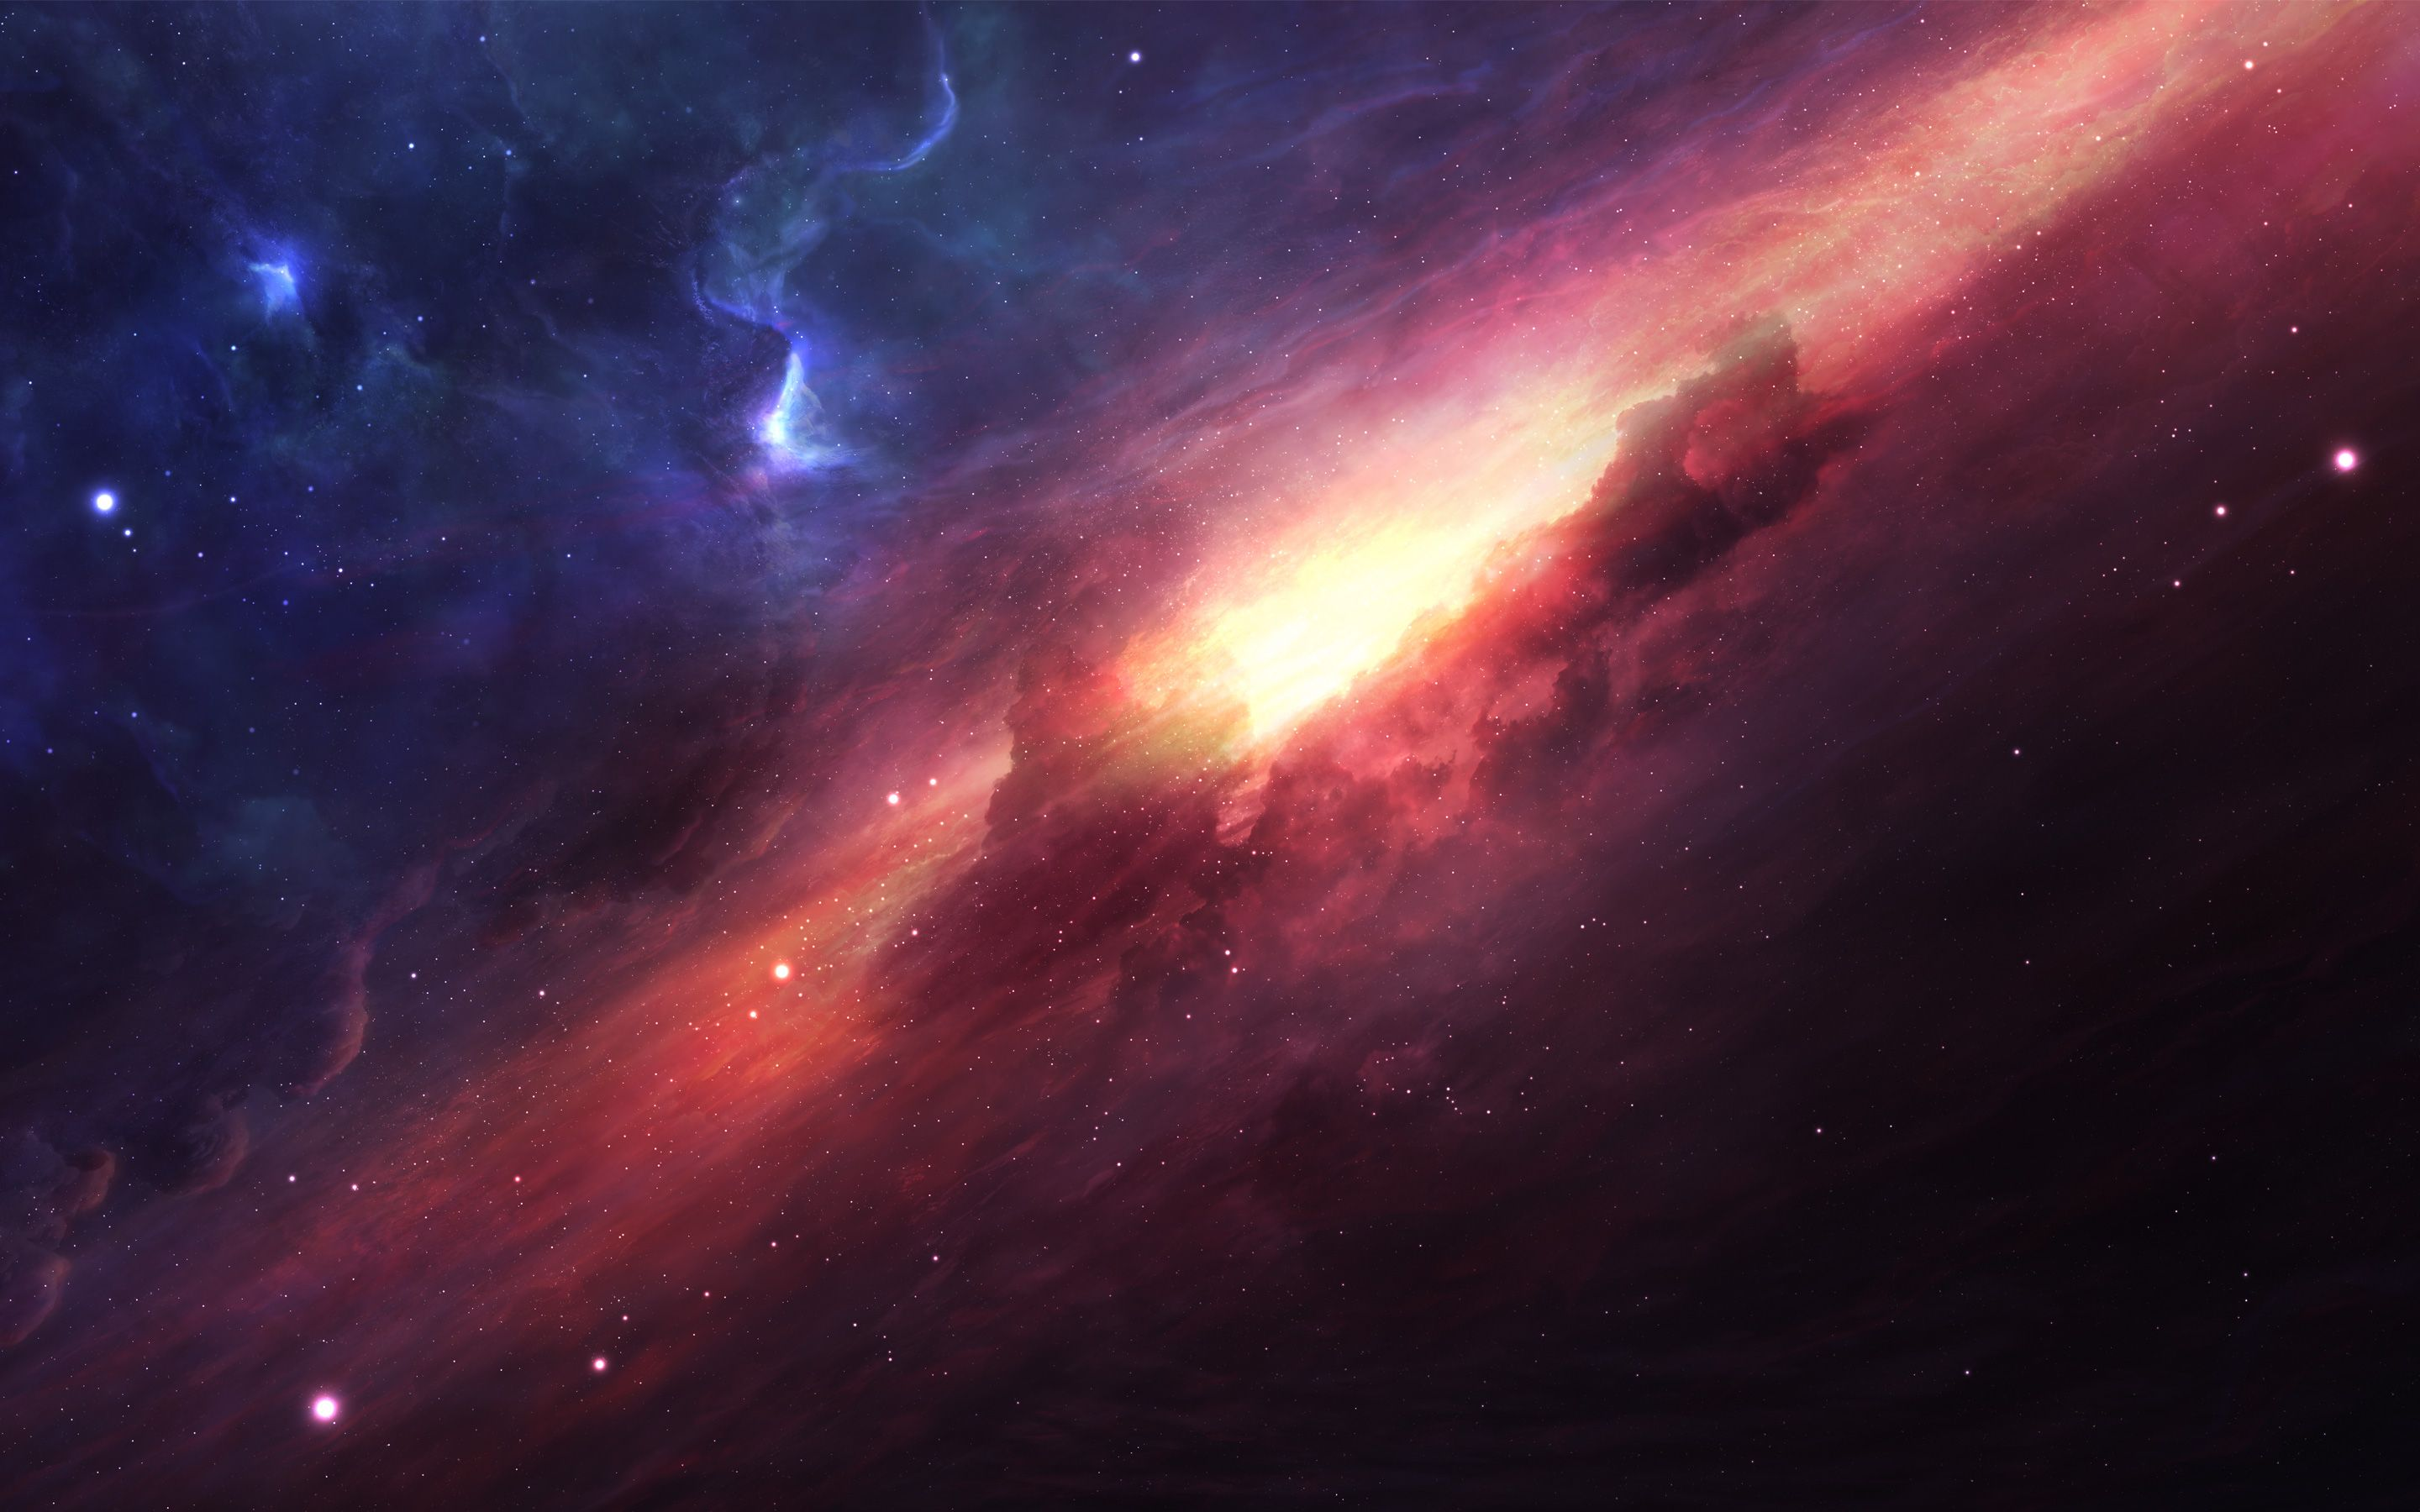 Digital Space Universe 4k 8k Hd Wallpaper Empapelado De Galaxias Wallpaper De Estrella Fondos De Pantalla Escritorio